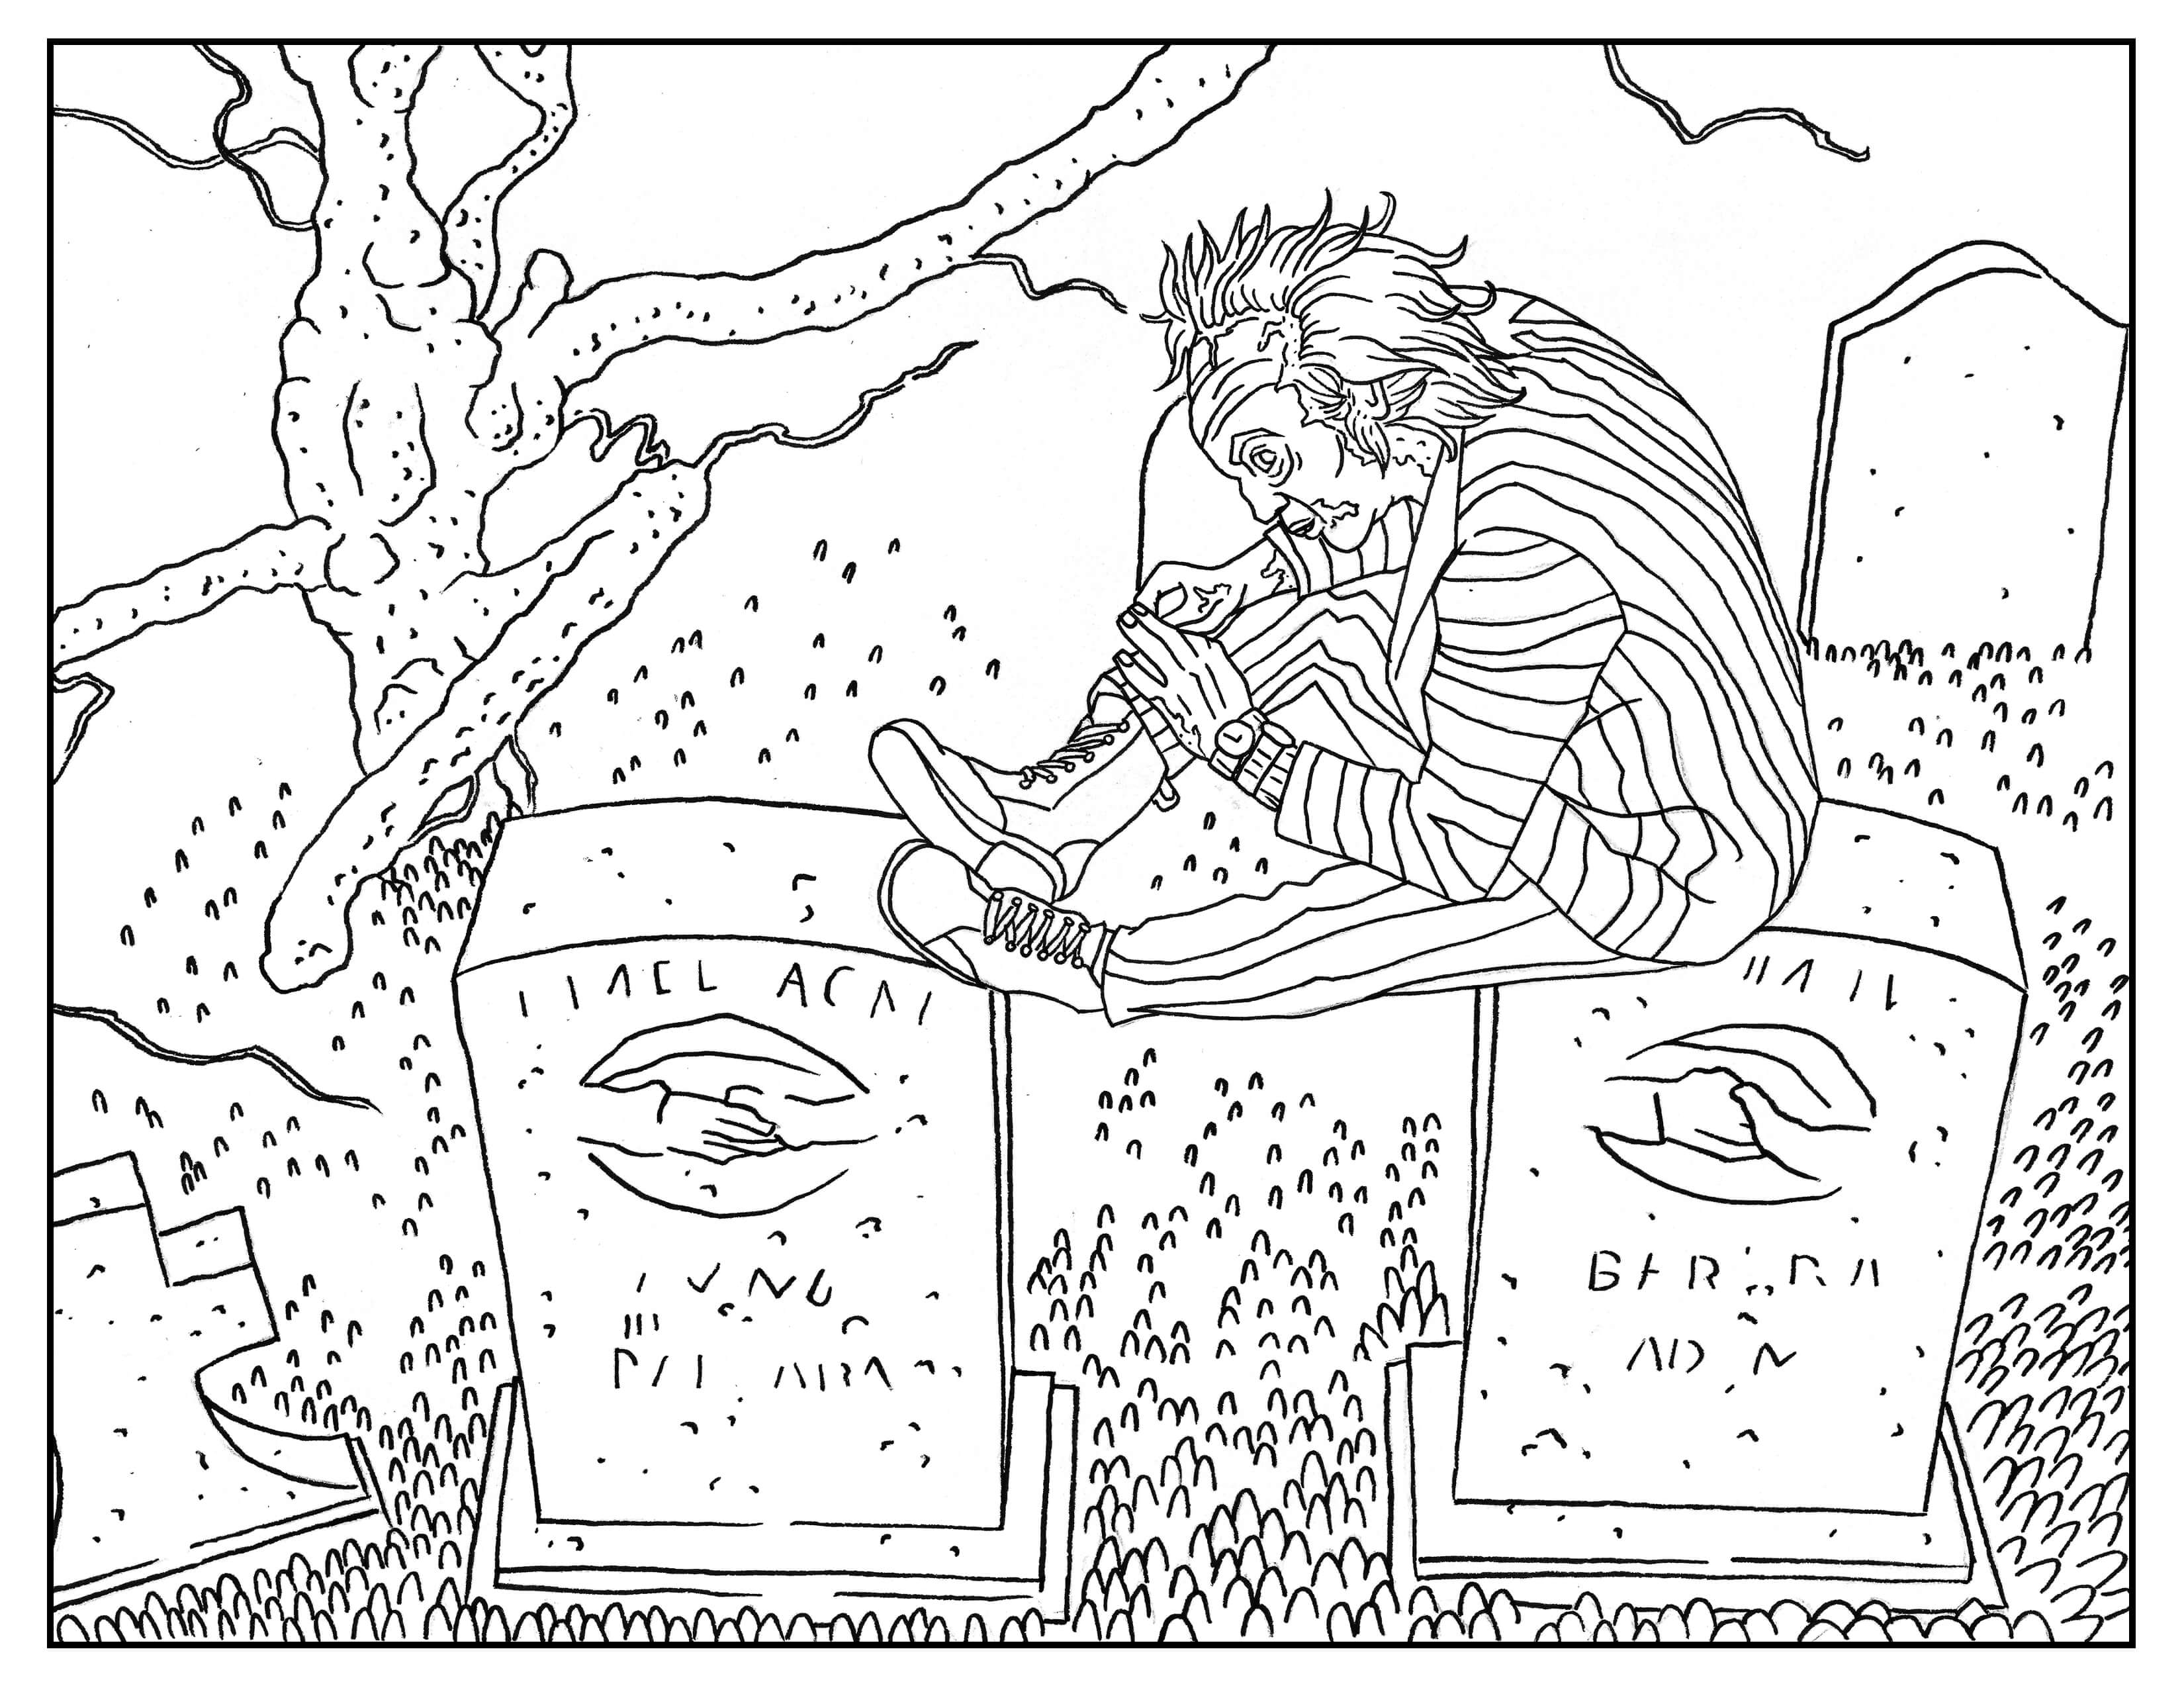 movie theme coloring pages - photo#50